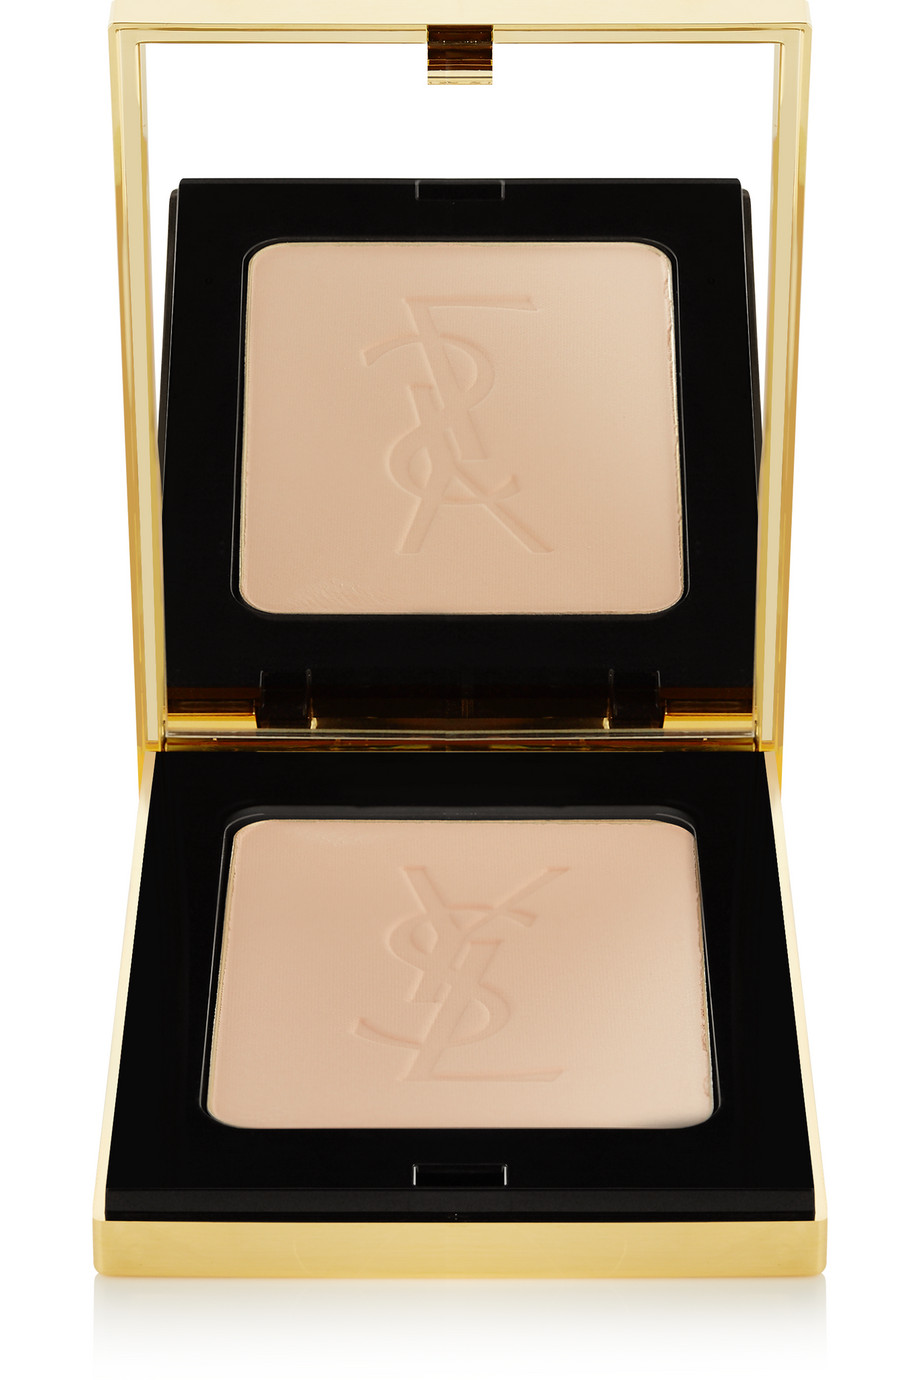 Poudre Compacte Radiance - Pink Sand 2, by Yves Saint Laurent Beauty